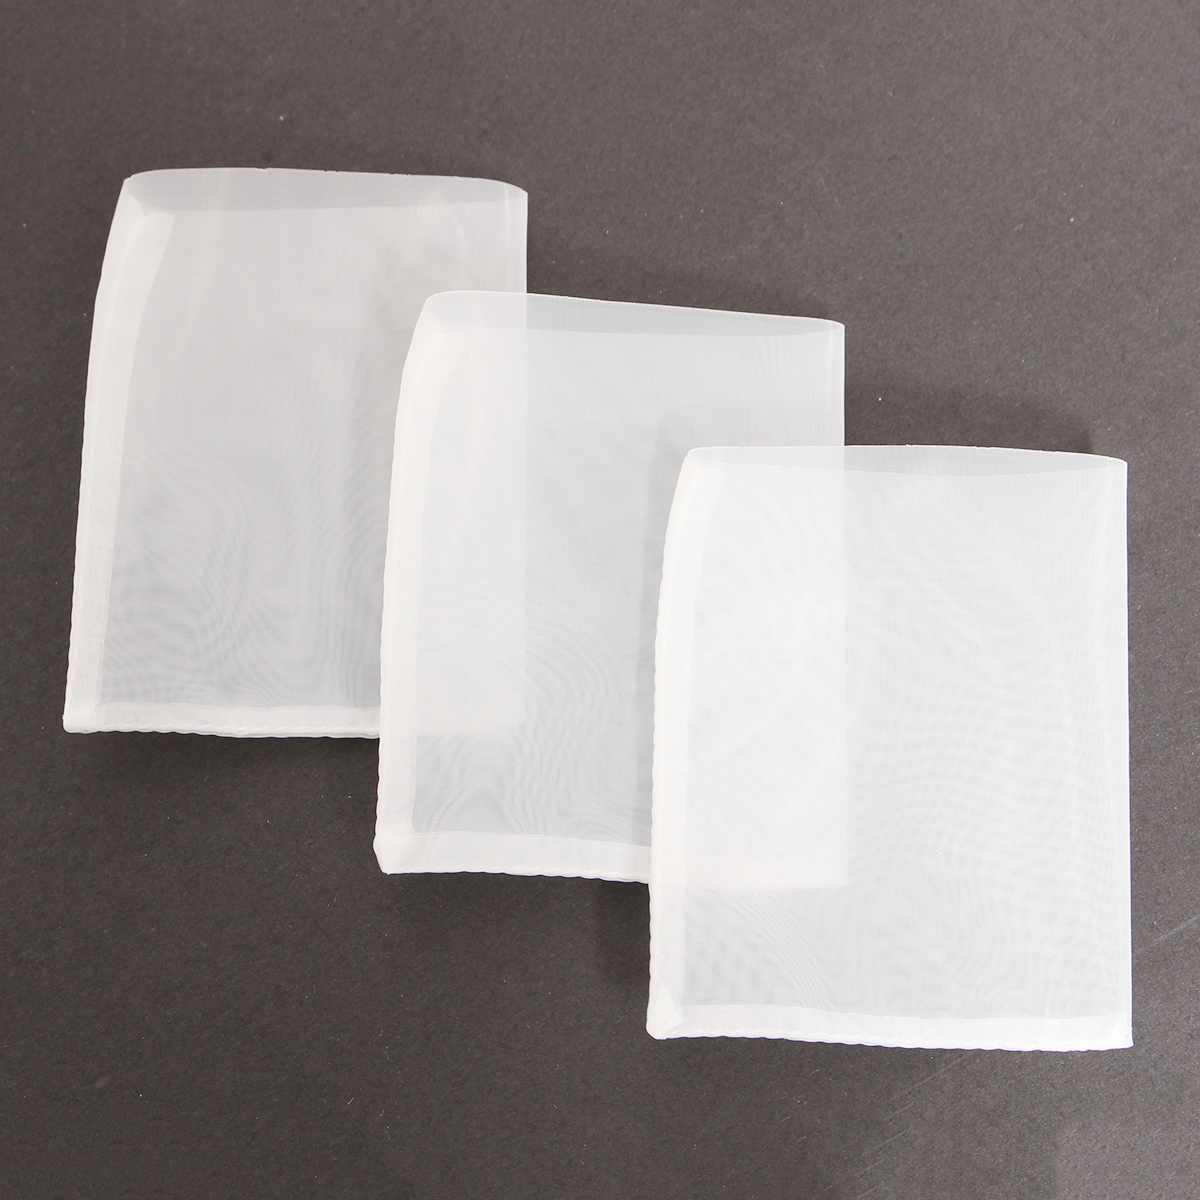 10pcs 90u micron Nylon Rosin Extraction Press Heat Filter Bags Filter Mesh Bags For heat press machine Nylon White 63.5 x 76mm